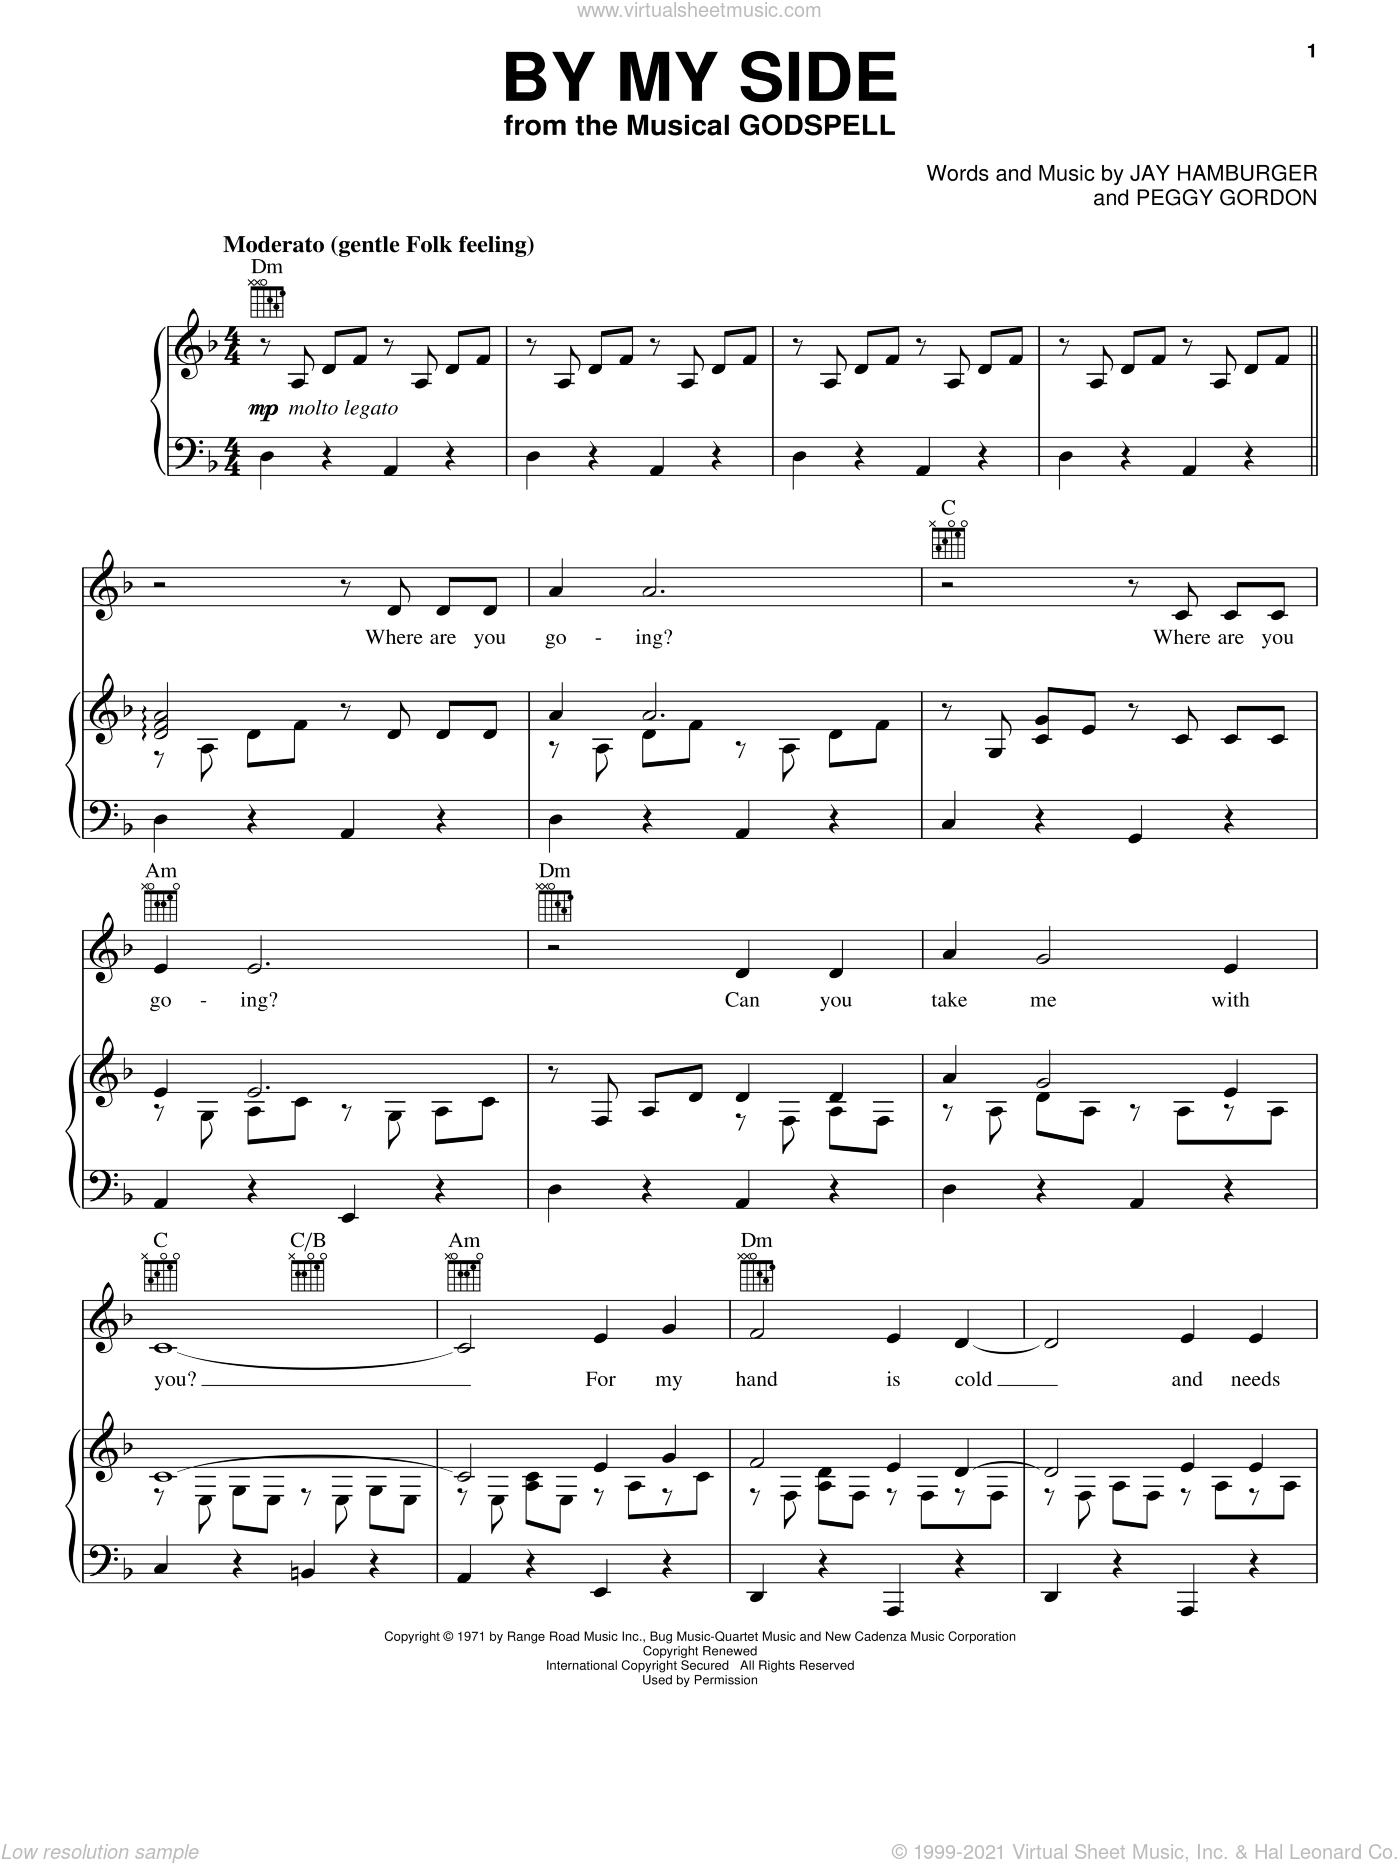 By My Side sheet music for voice, piano or guitar by Stephen Schwartz and Jay Hamburger, intermediate voice, piano or guitar. Score Image Preview.